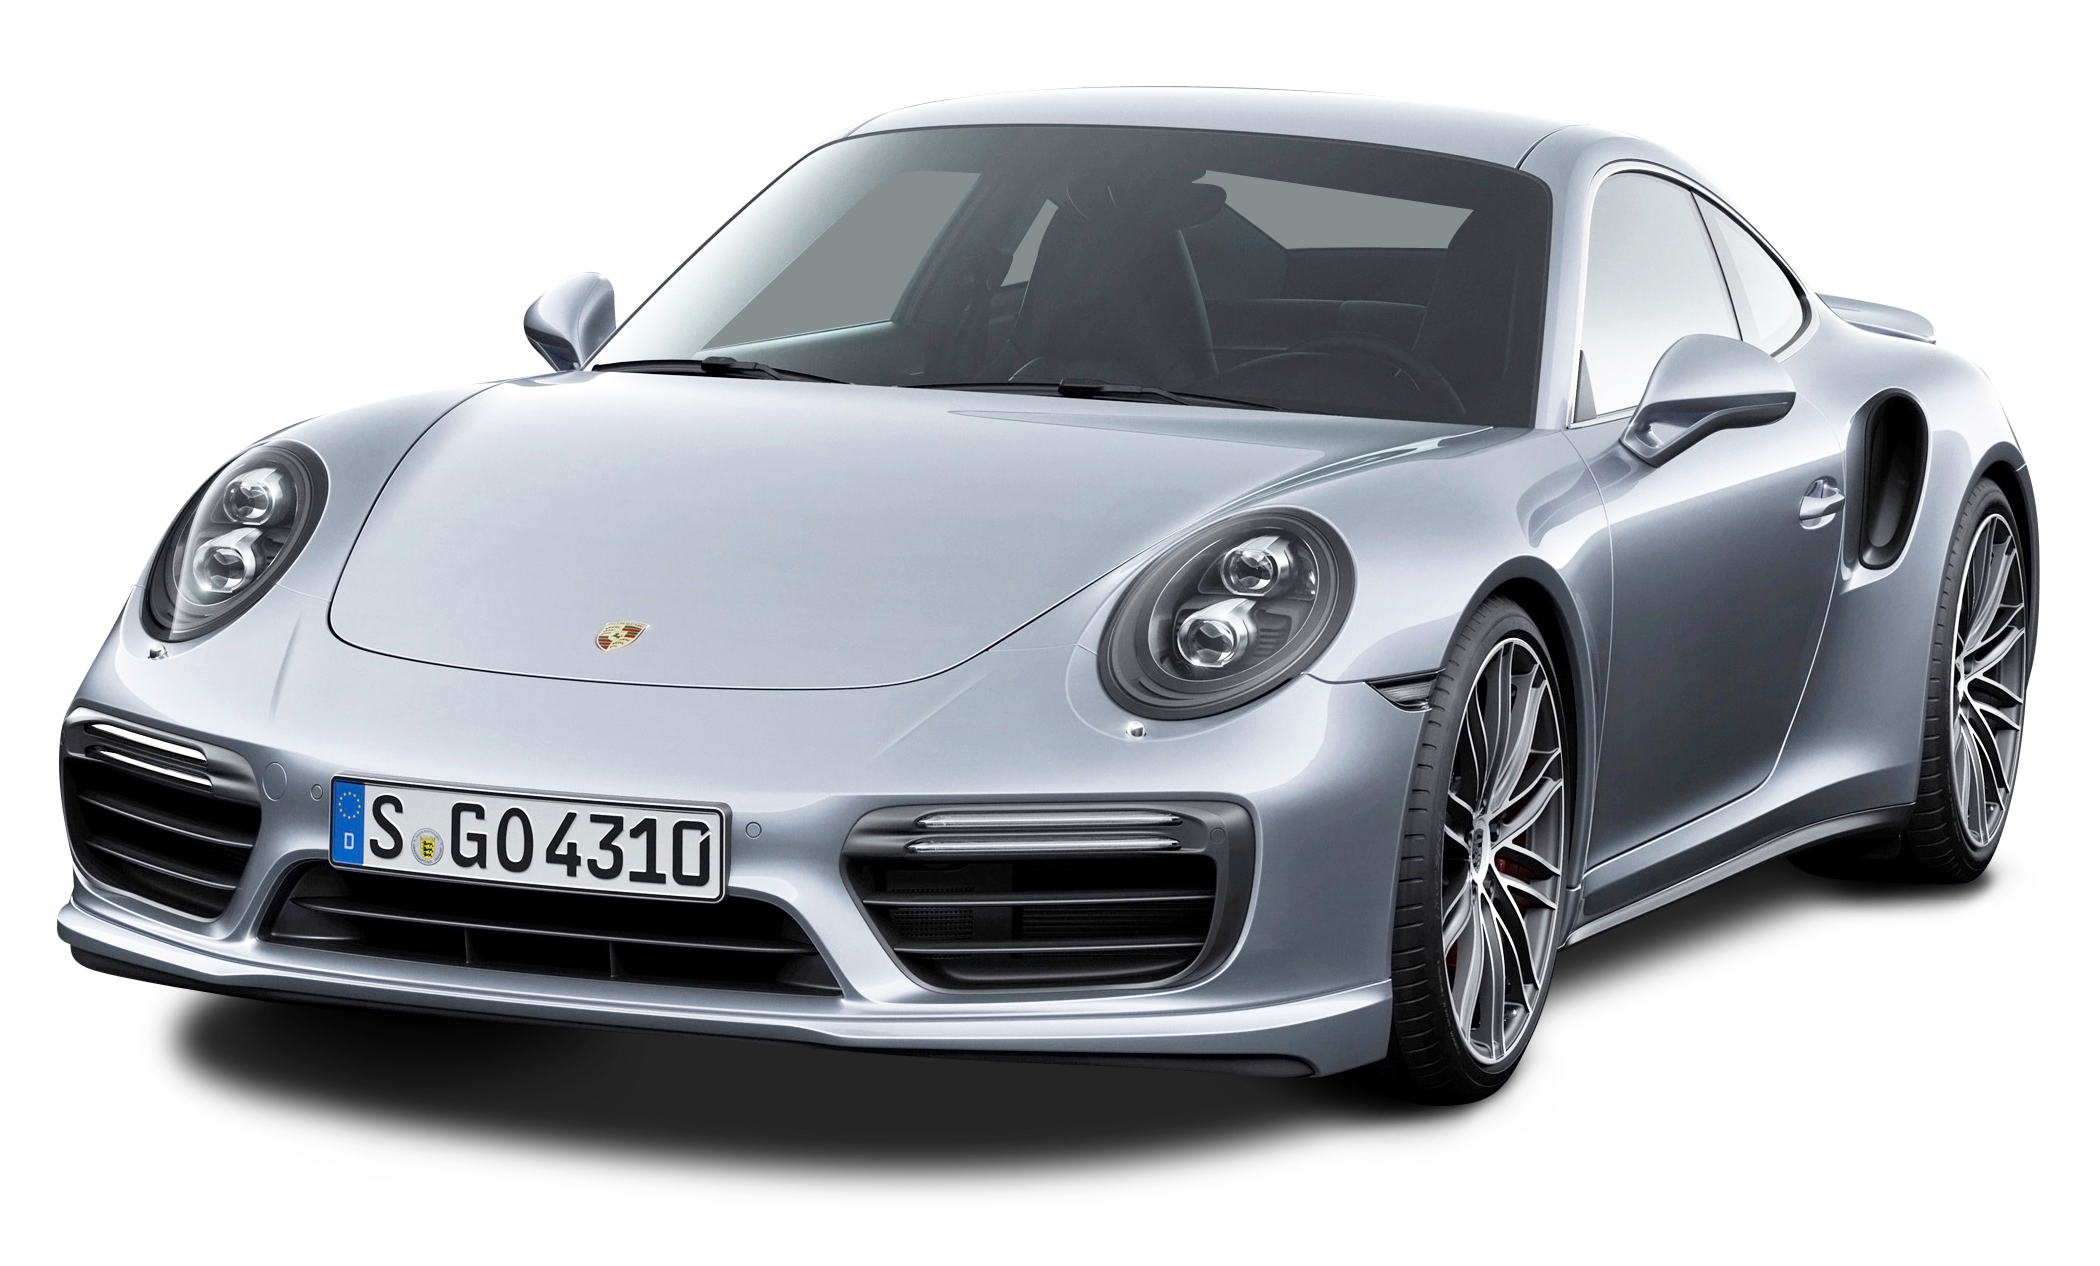 Porsche 911 Turbo Silver Car PNG Image.